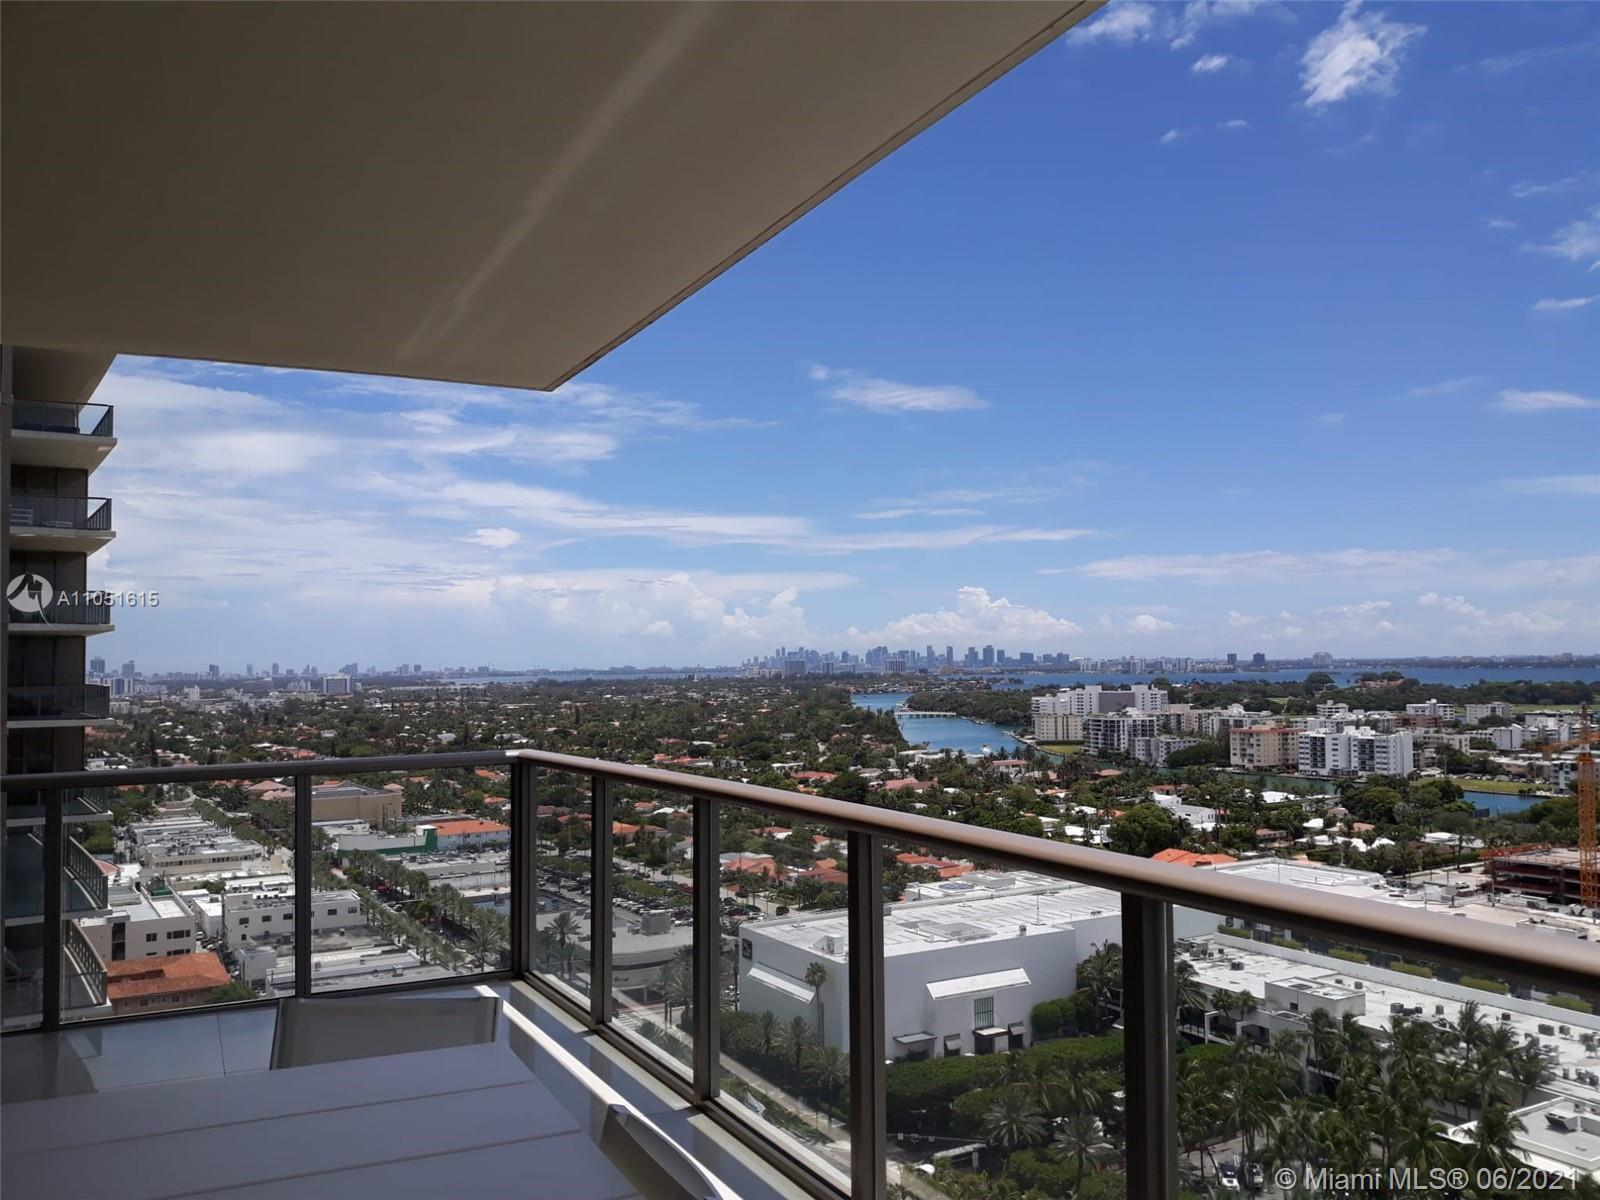 Experience St. Regis's luxury living at this exquisitely designed 2 beds 2 1/2 baths with amazing vi